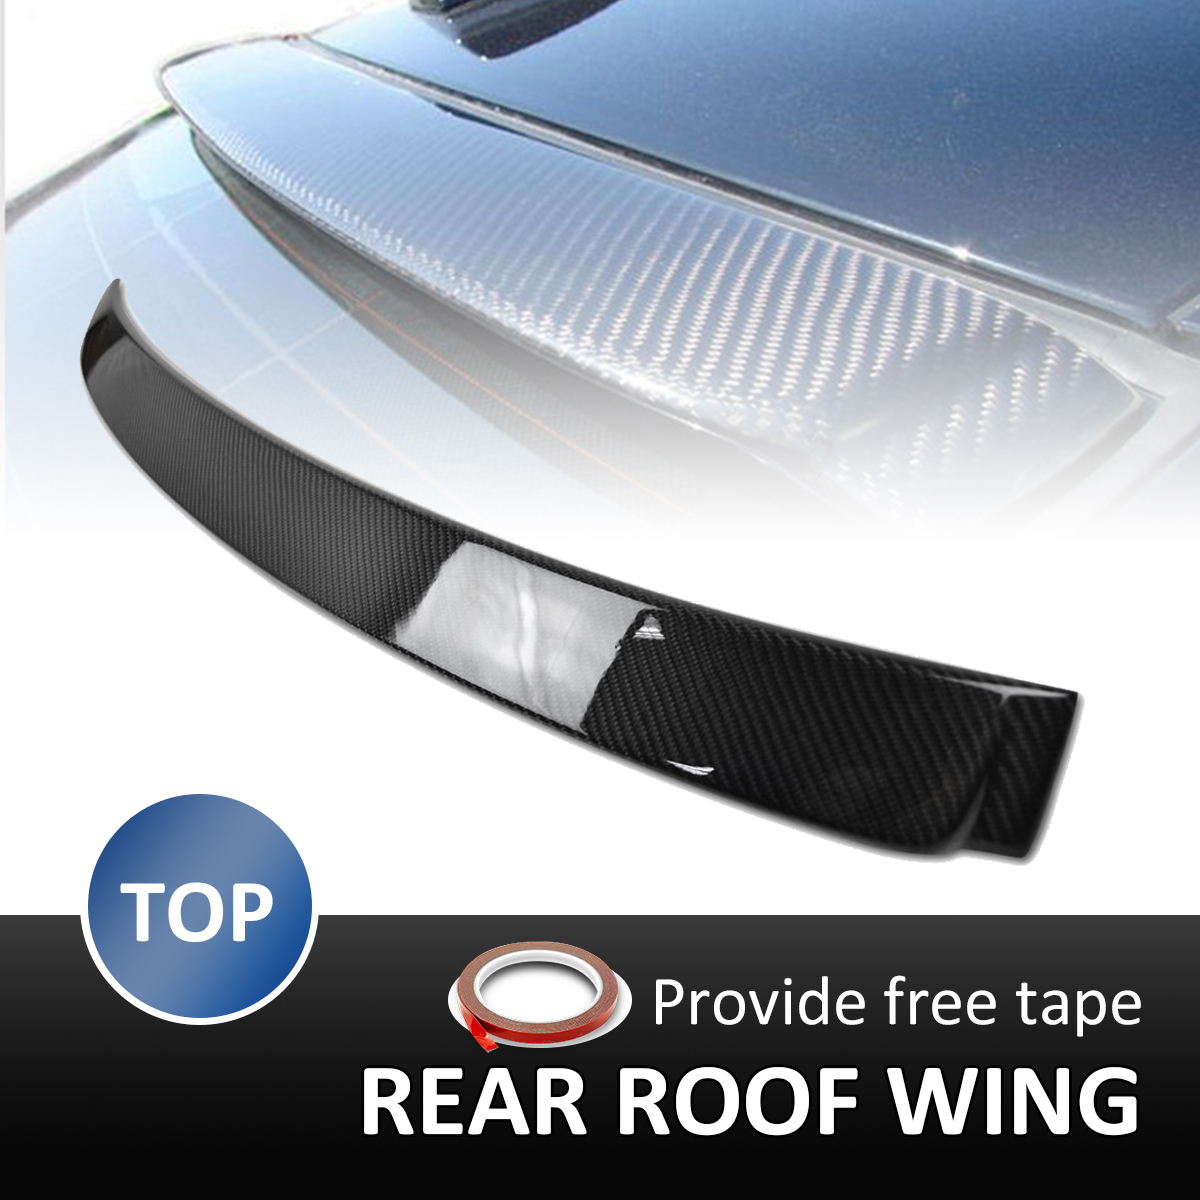 Real Carbon Fiber Rear Roof Wing Trunk Spoiler For BMW 3 Series E90 325i 323i 2005-2012 AC Style Rear Wing Spoiler Rear Trunk carbon fiber rear spoiler trunk boot wing for audi a7 s7 s line 2012 2015 jc style car tuning parts